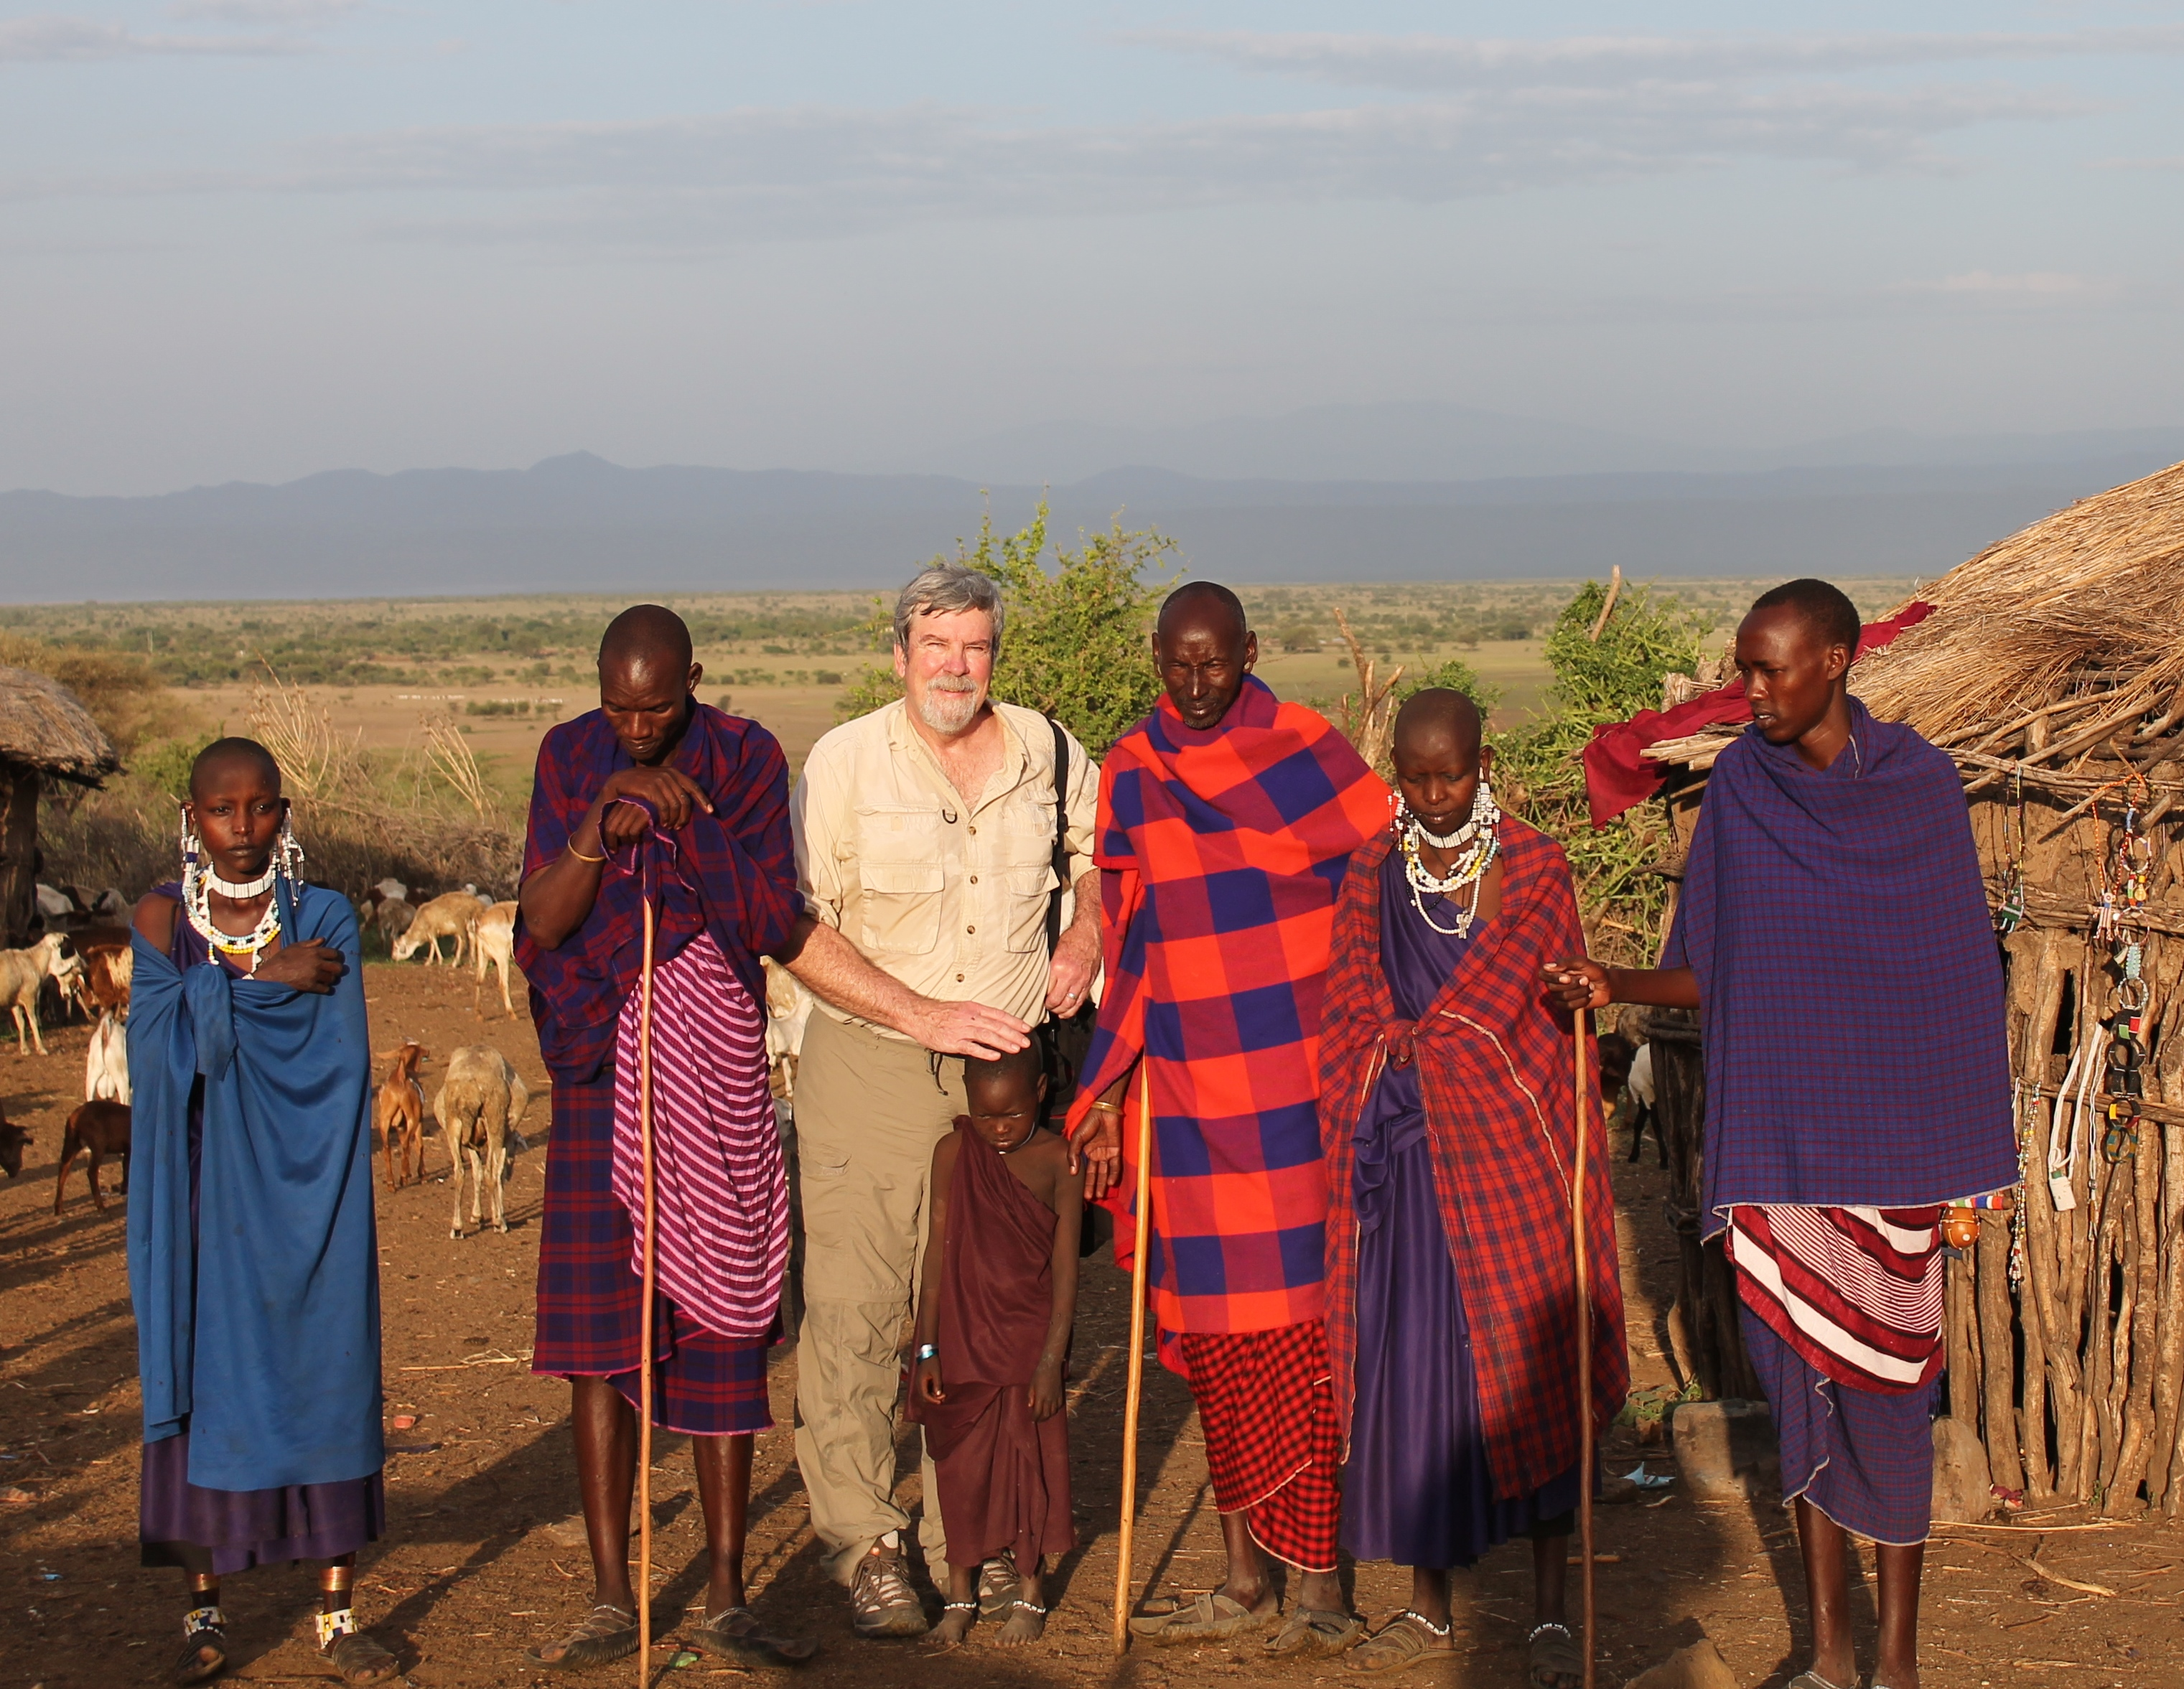 Maasai village you can visit on your exquisitely crafted journey to experience their lifestyle